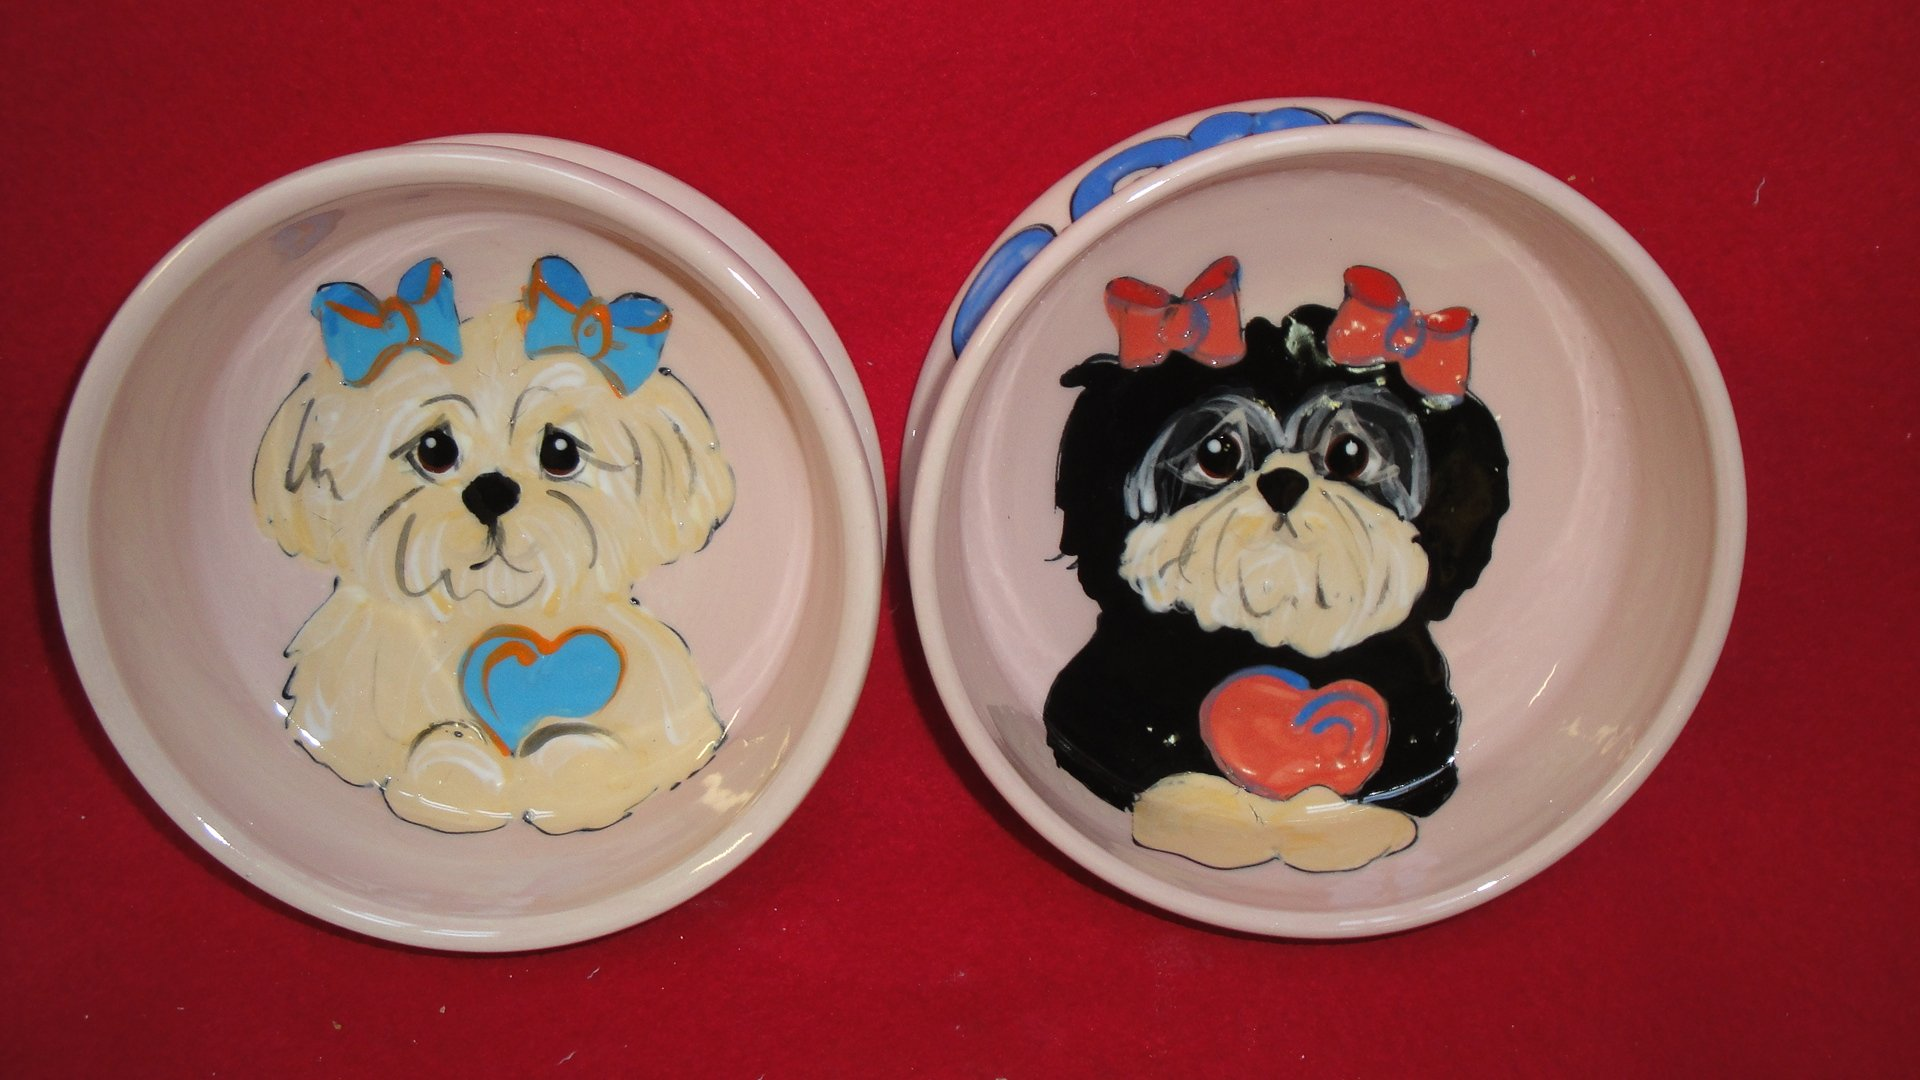 Lhasa Apso 8'' and 6'' Pet Bowls for Food and Water. Personalized at no Charge. Signed by Artist, Debby Carman.